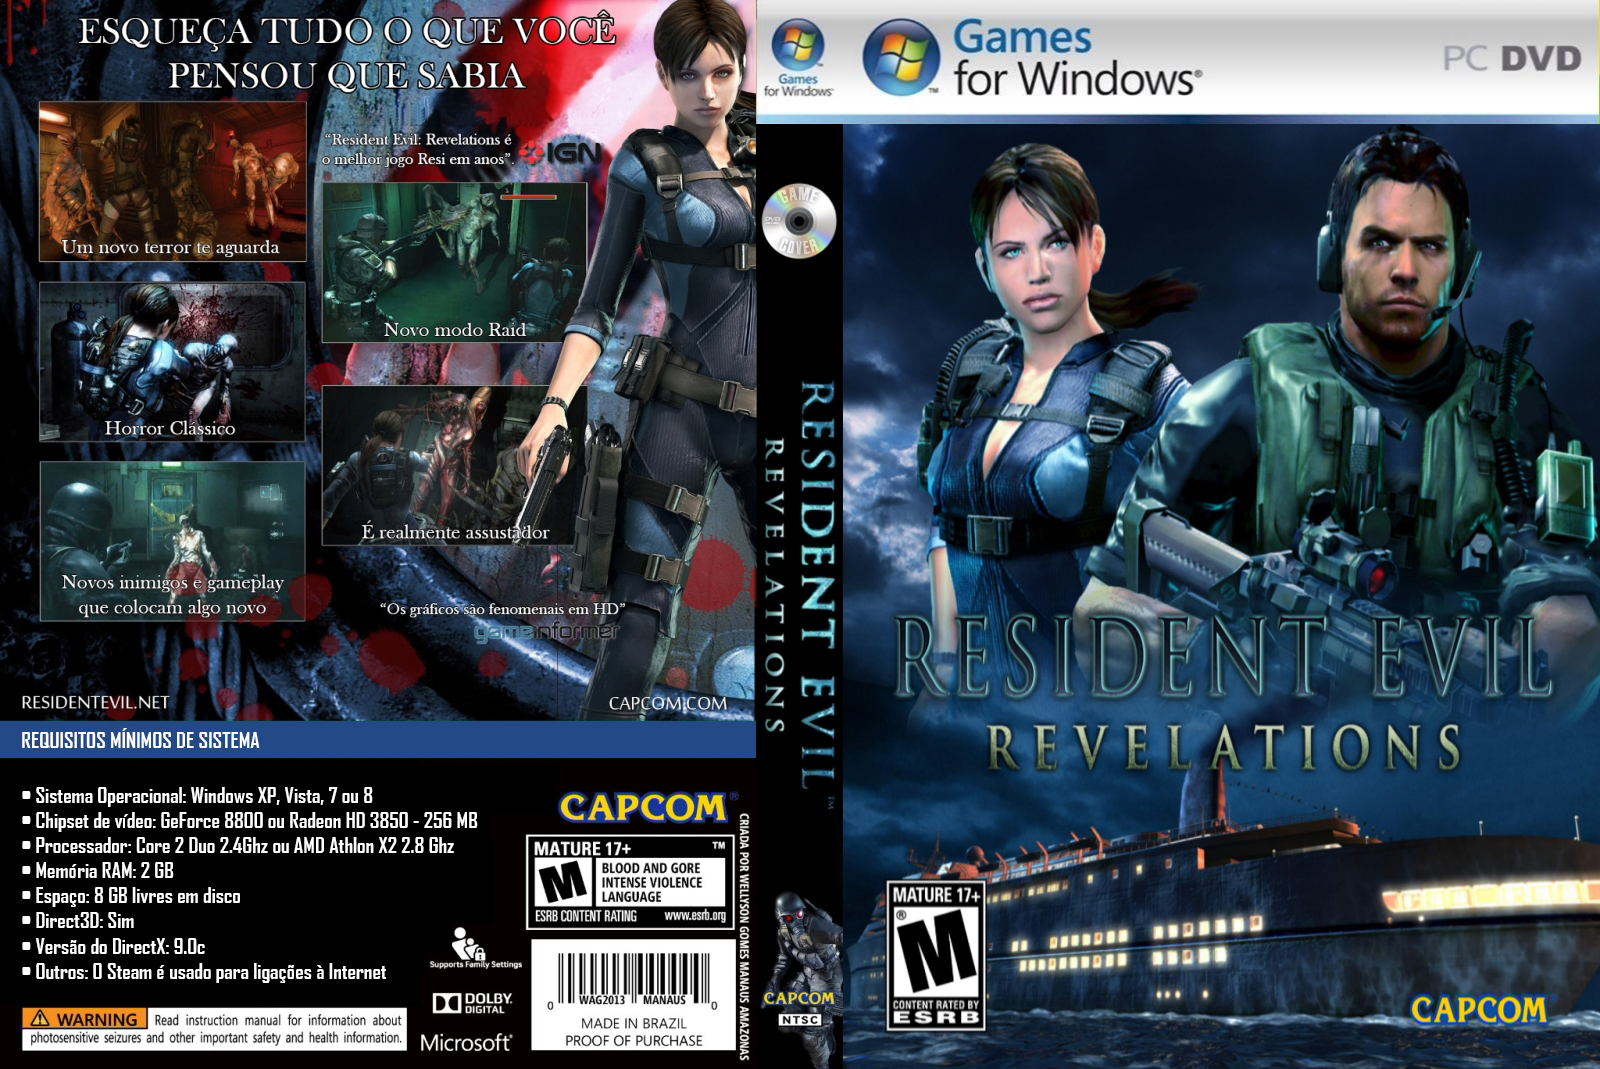 Resident Evil Revelations PC DVD Capa